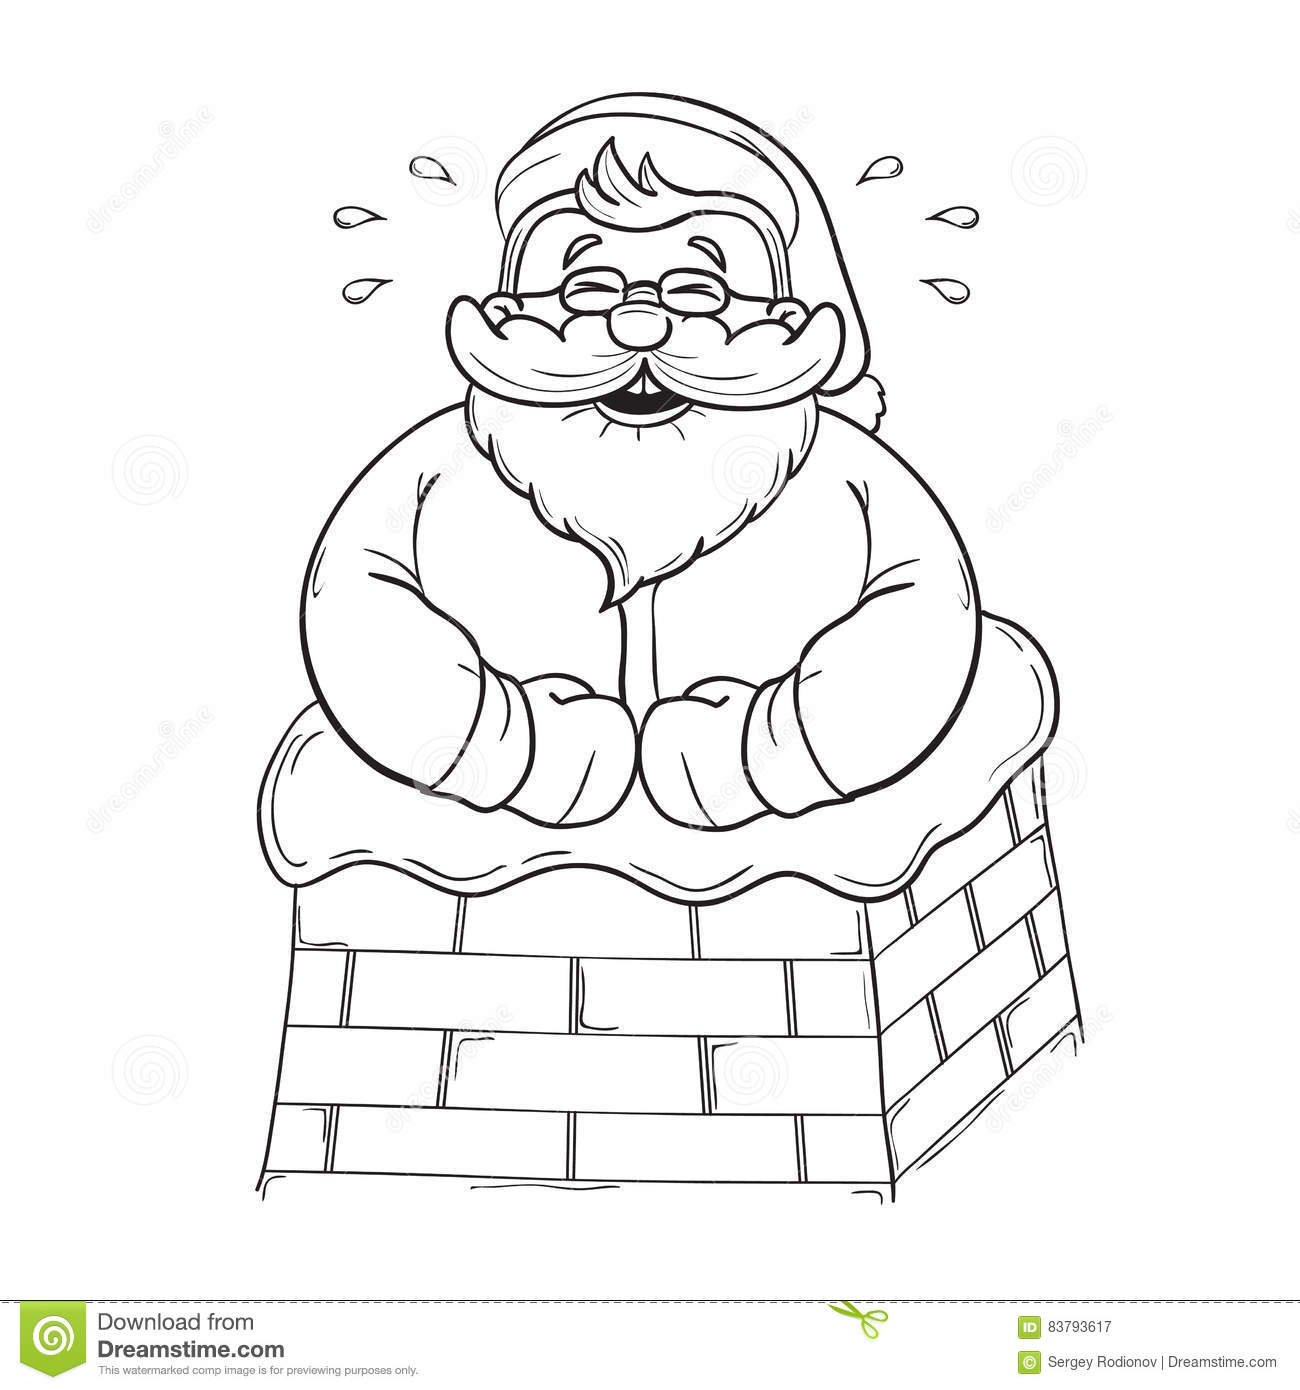 Santa S Stuck Coloring Page With Funny Cartoon Claus In The Chimney And Laughs Black